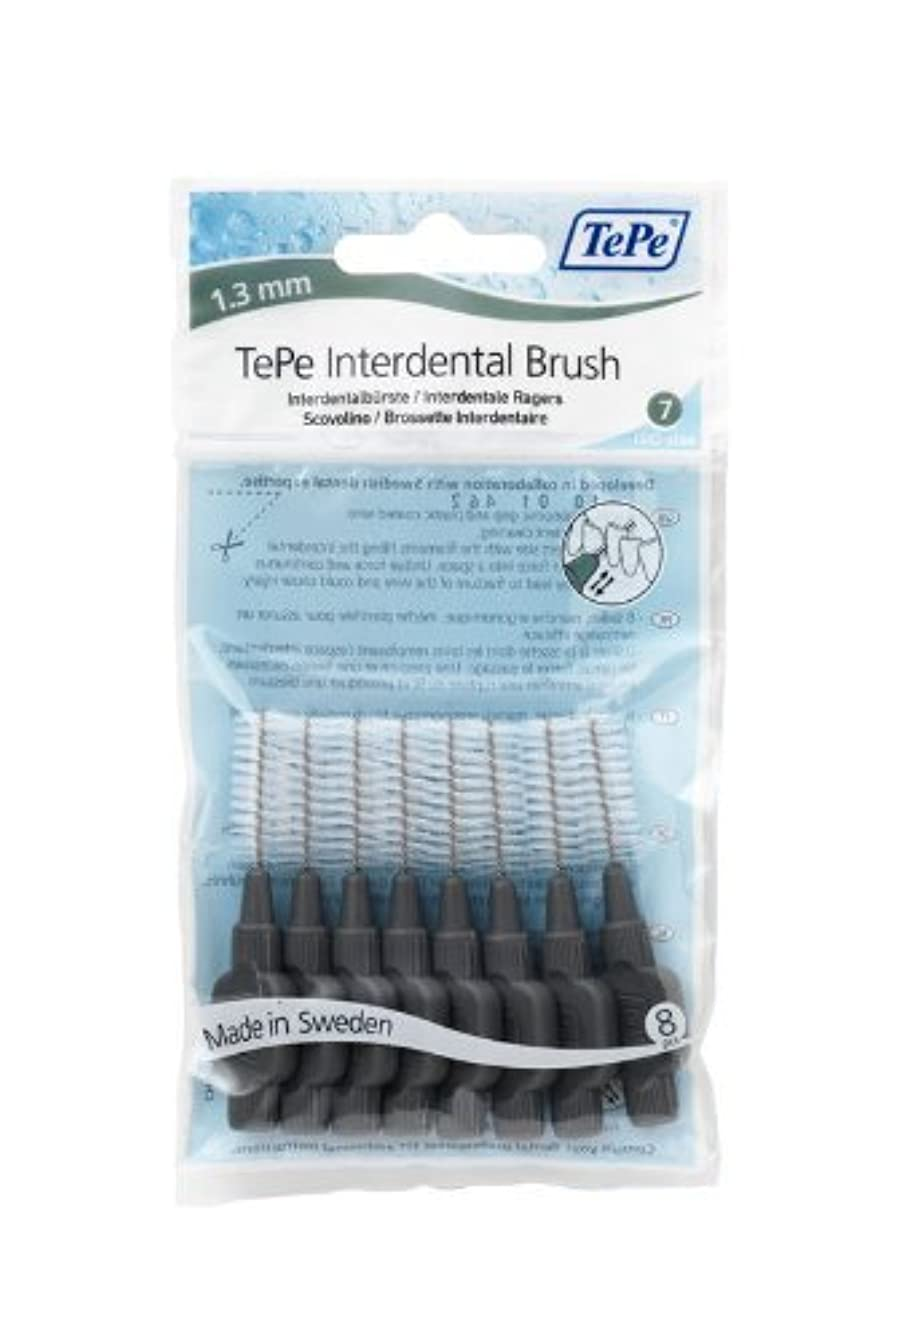 成長するアンティーク異邦人TePe Interdental Brushes Original Grey 8 Brushes by TePe